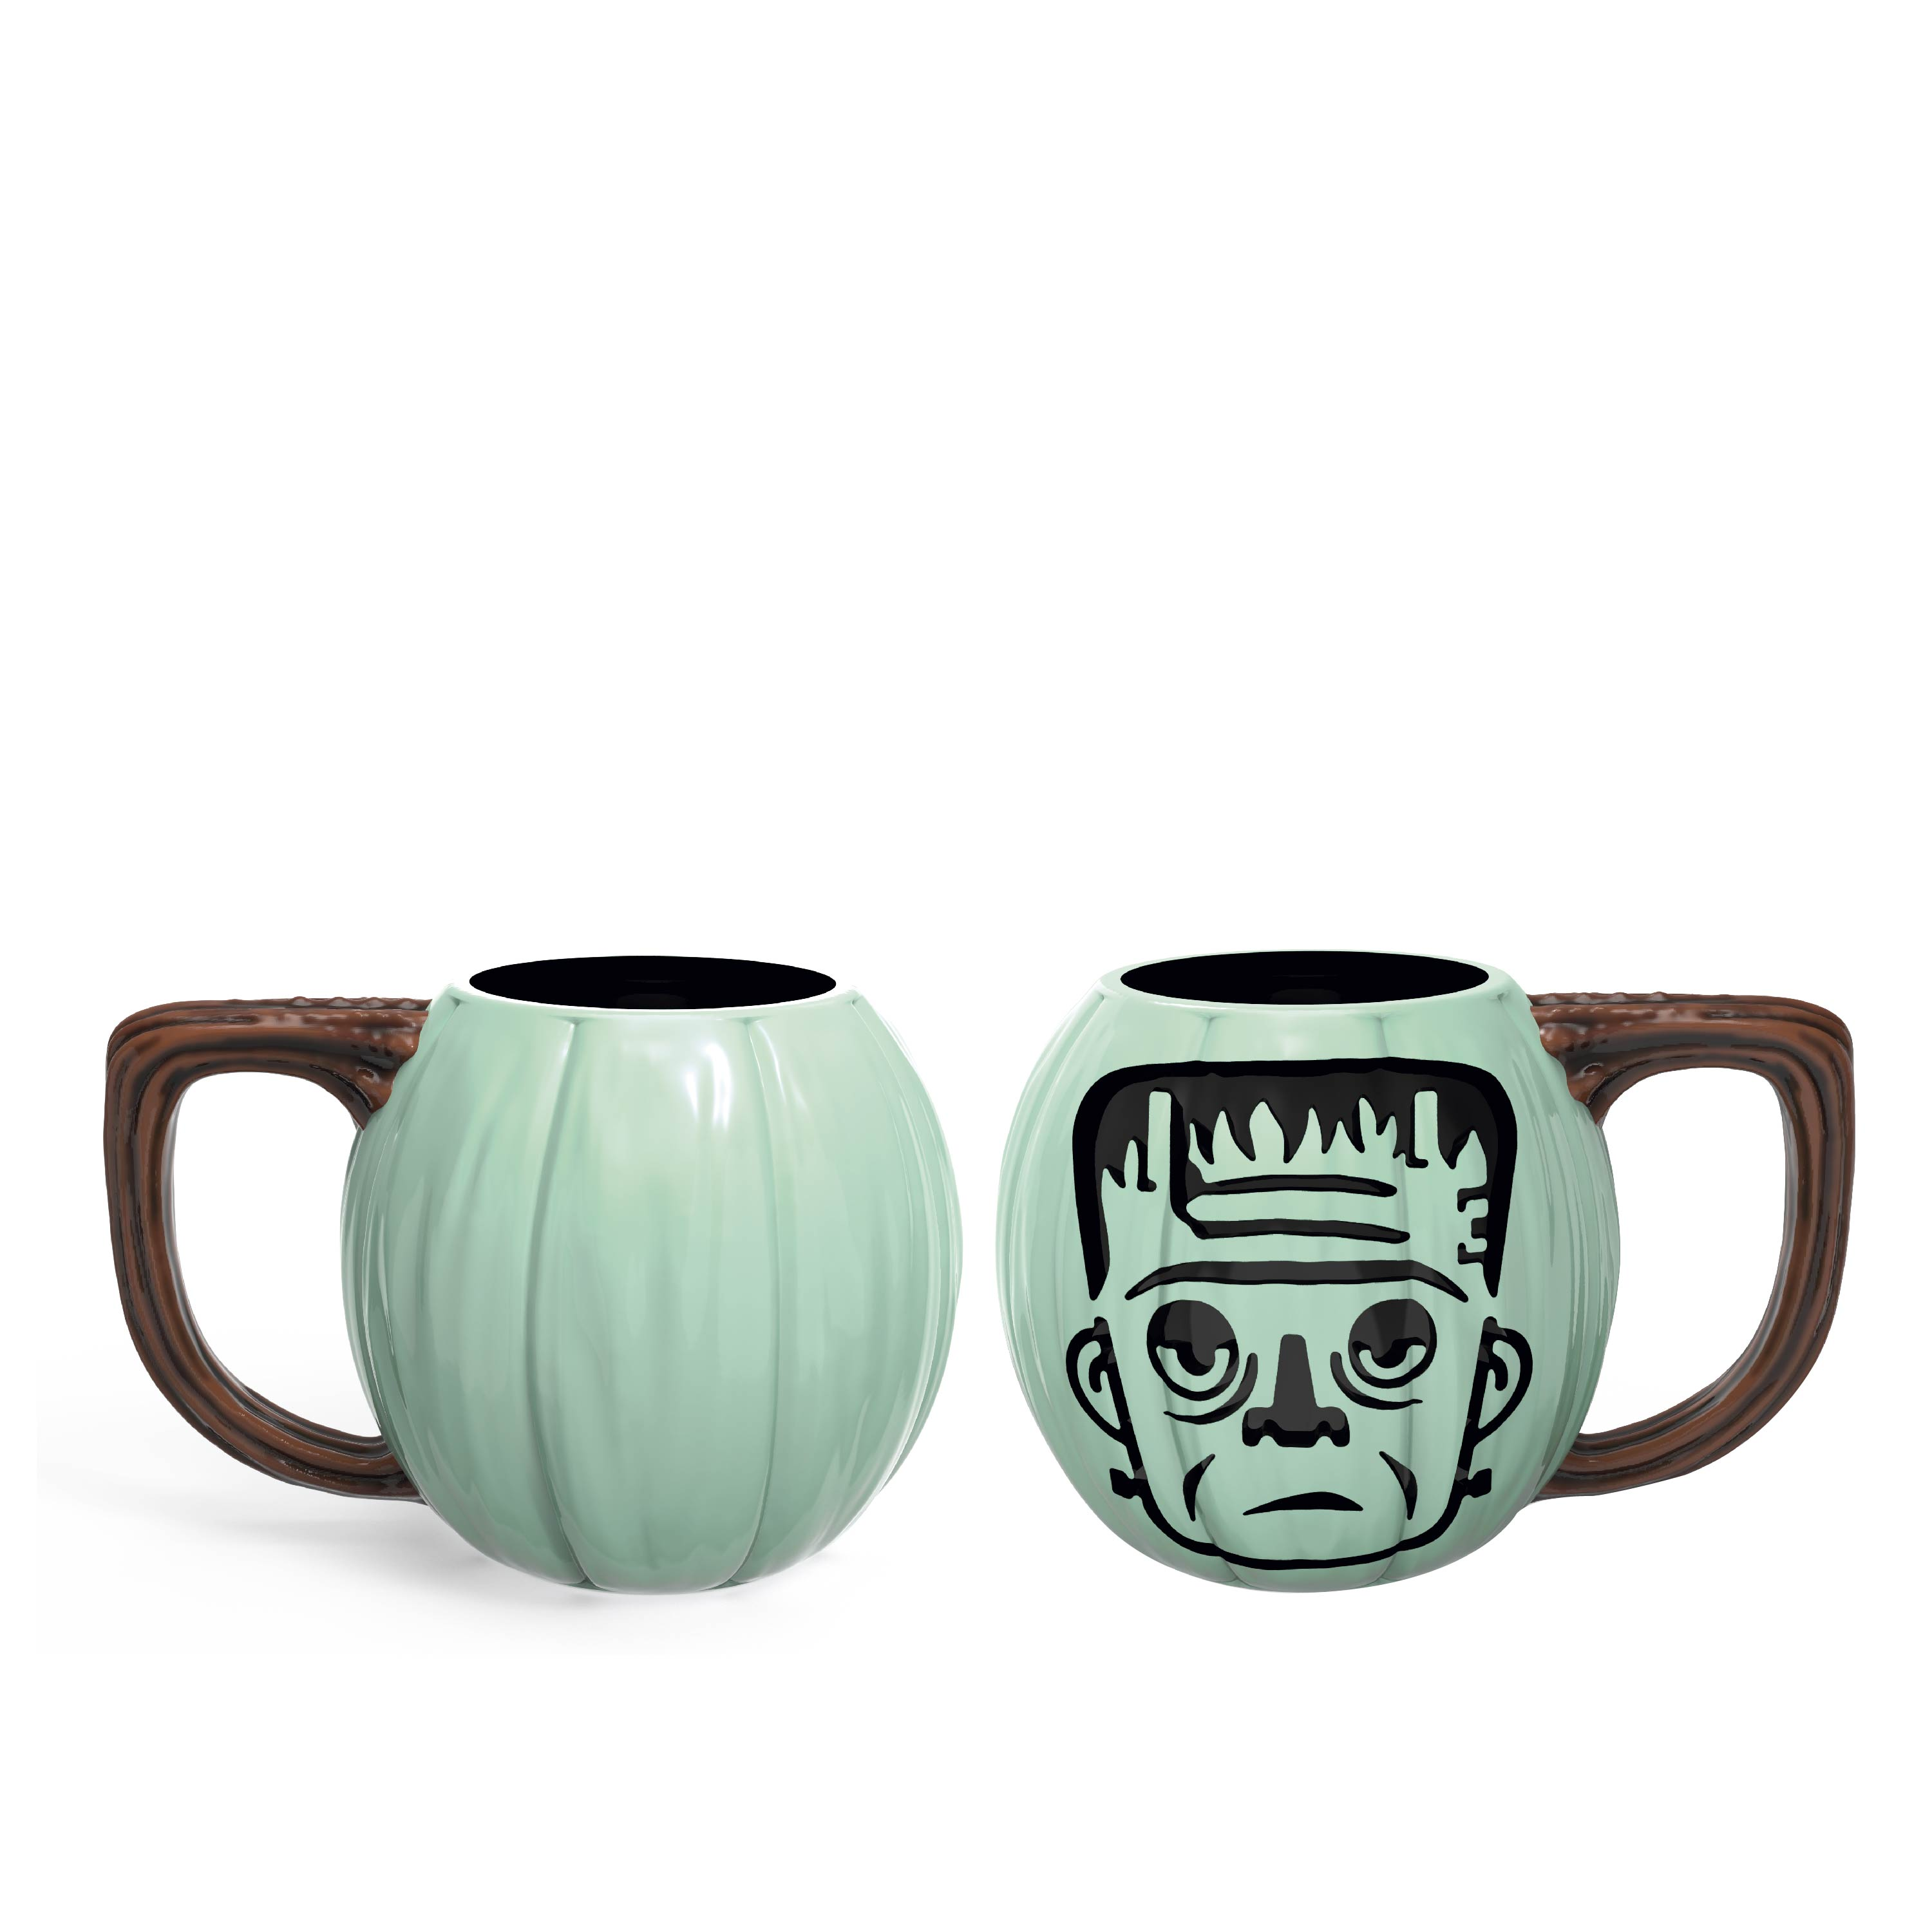 Little Monsters 15 ounce Coffee Mug and Spoon, Frankenstein slideshow image 7